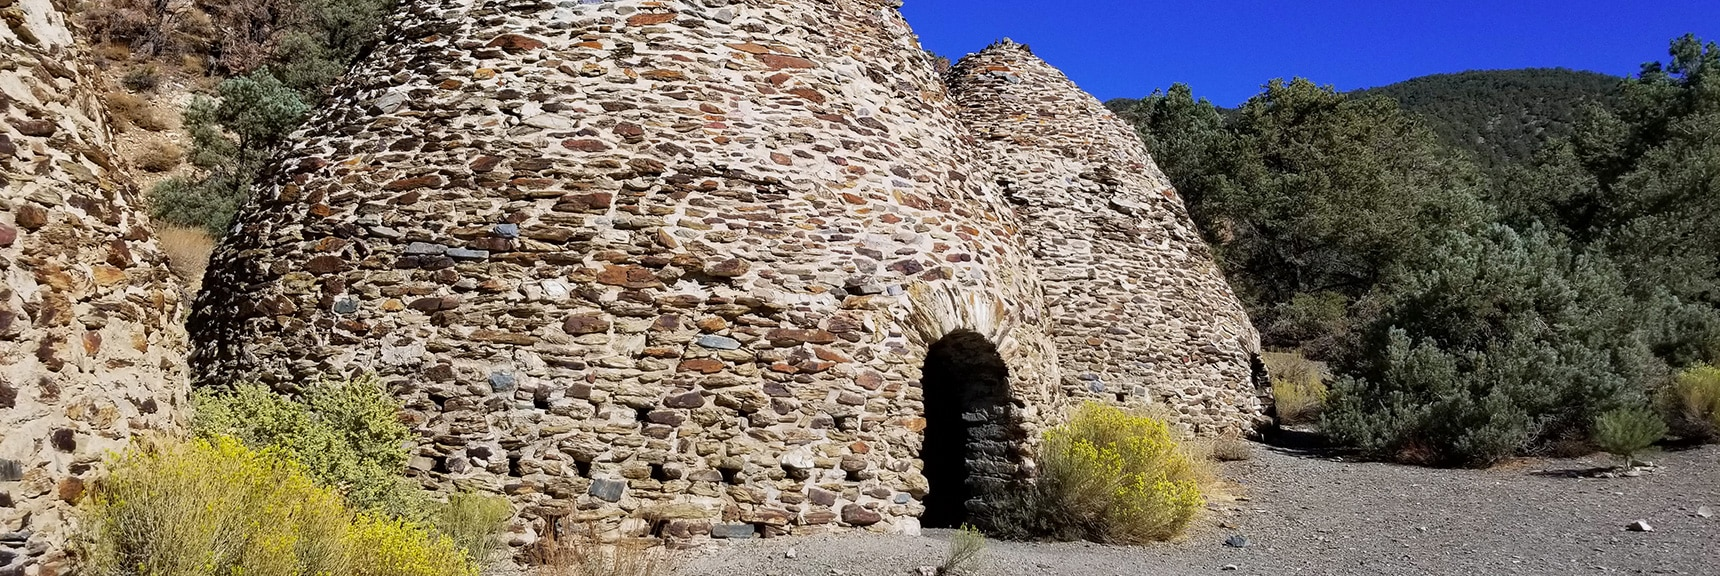 The Outside Entrance to a Charcoal Kiln | Charcoal Kilns | Death Valley, California